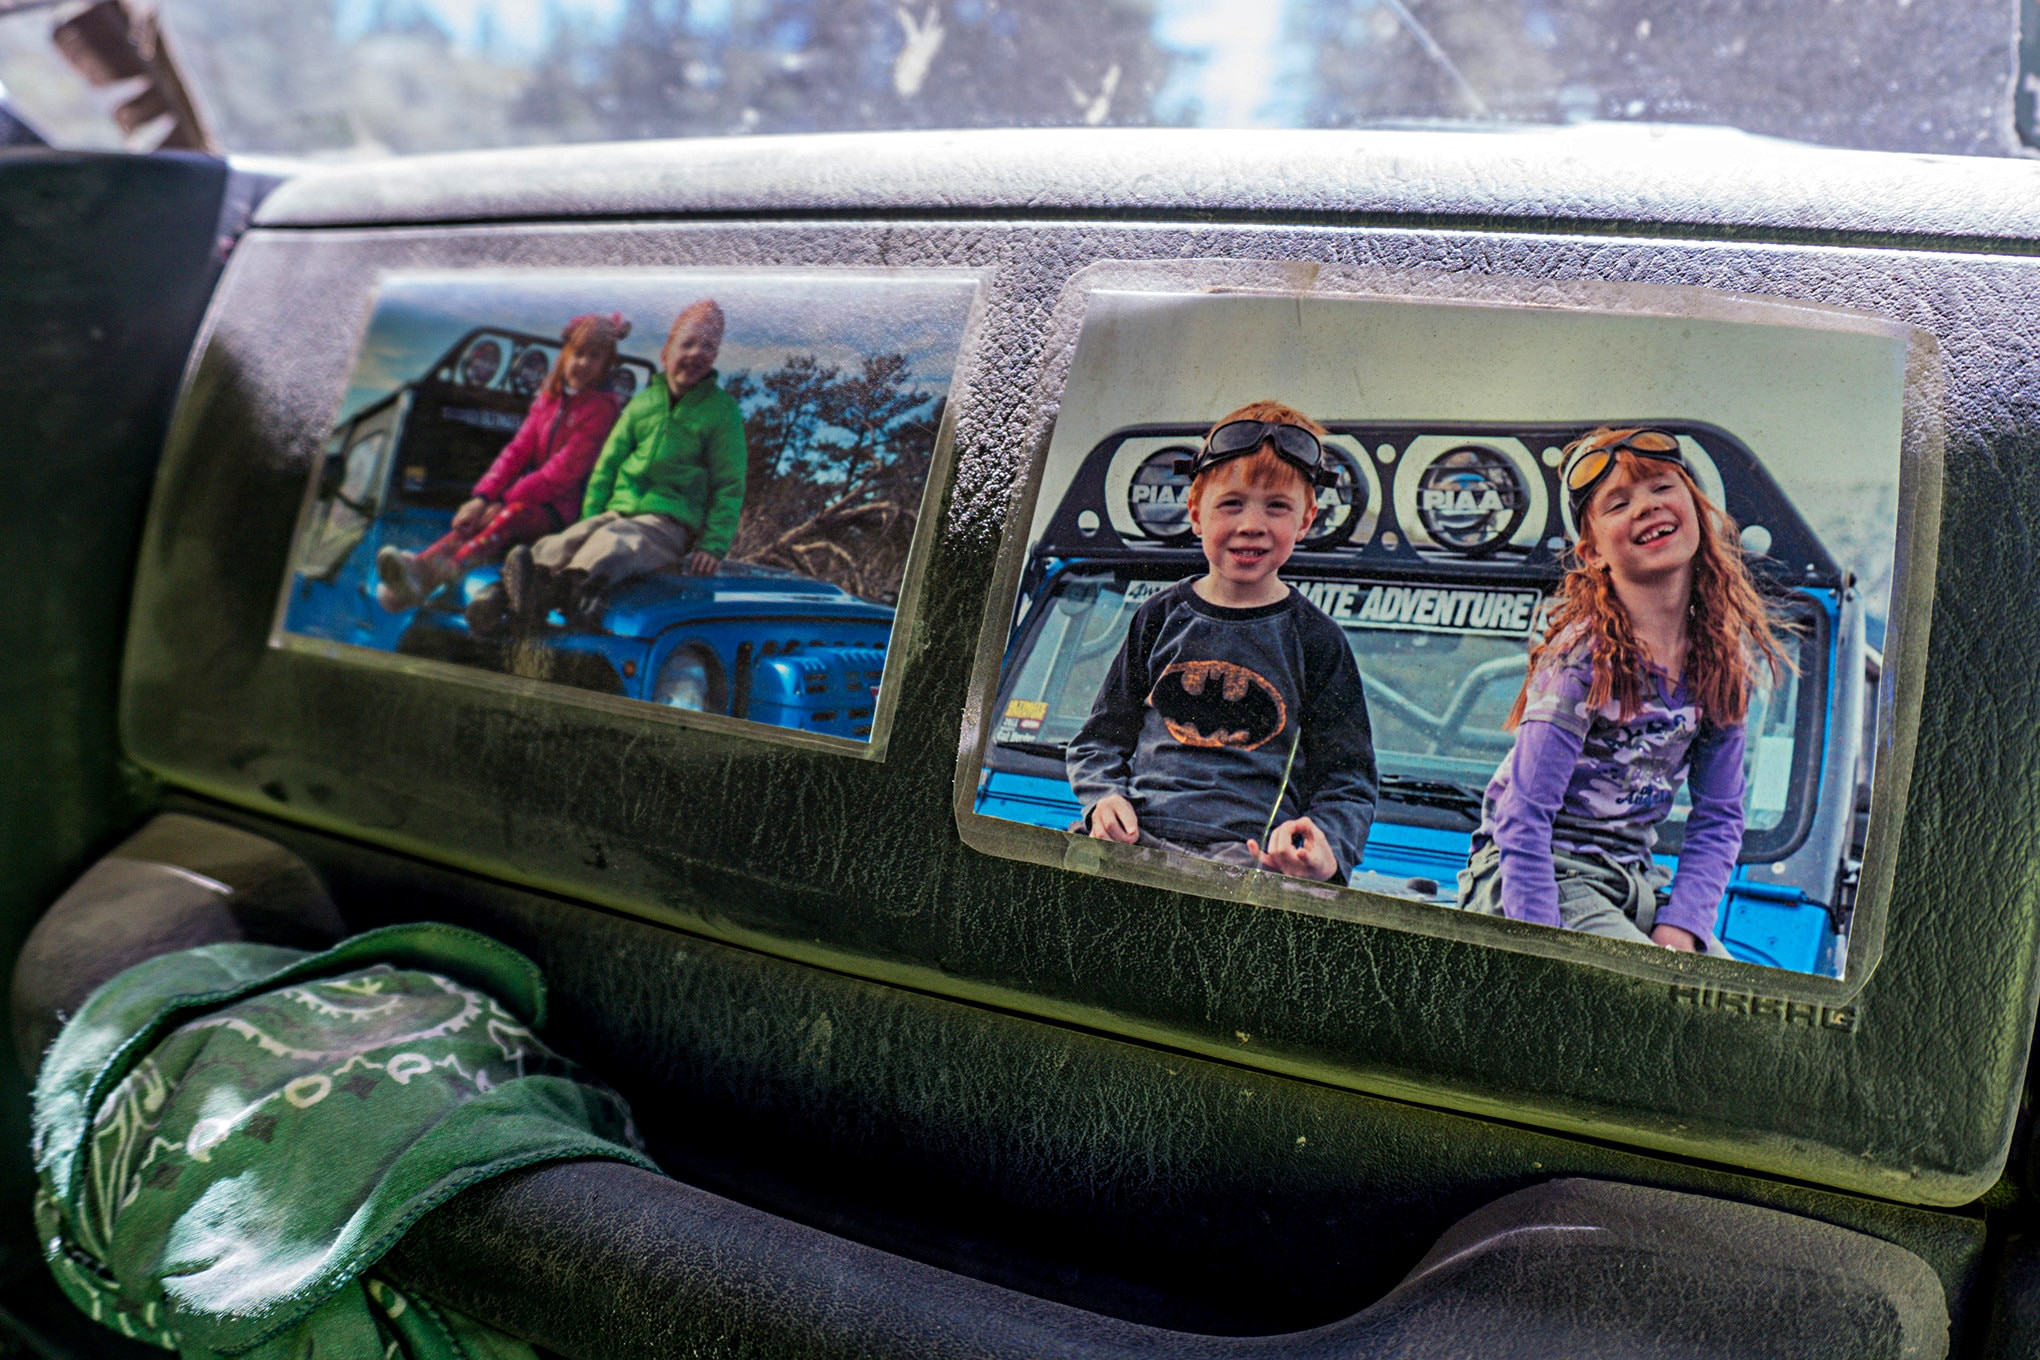 Clifton Slay has photos of his kids taped to his dash. He says that looking at the photos helps remind him to drive his Jeep sanely, which keeps the wrenching to a minimum for a week on the trail. Slay drove his LJ Wrangler all the way from Colorado to California and back for UA.